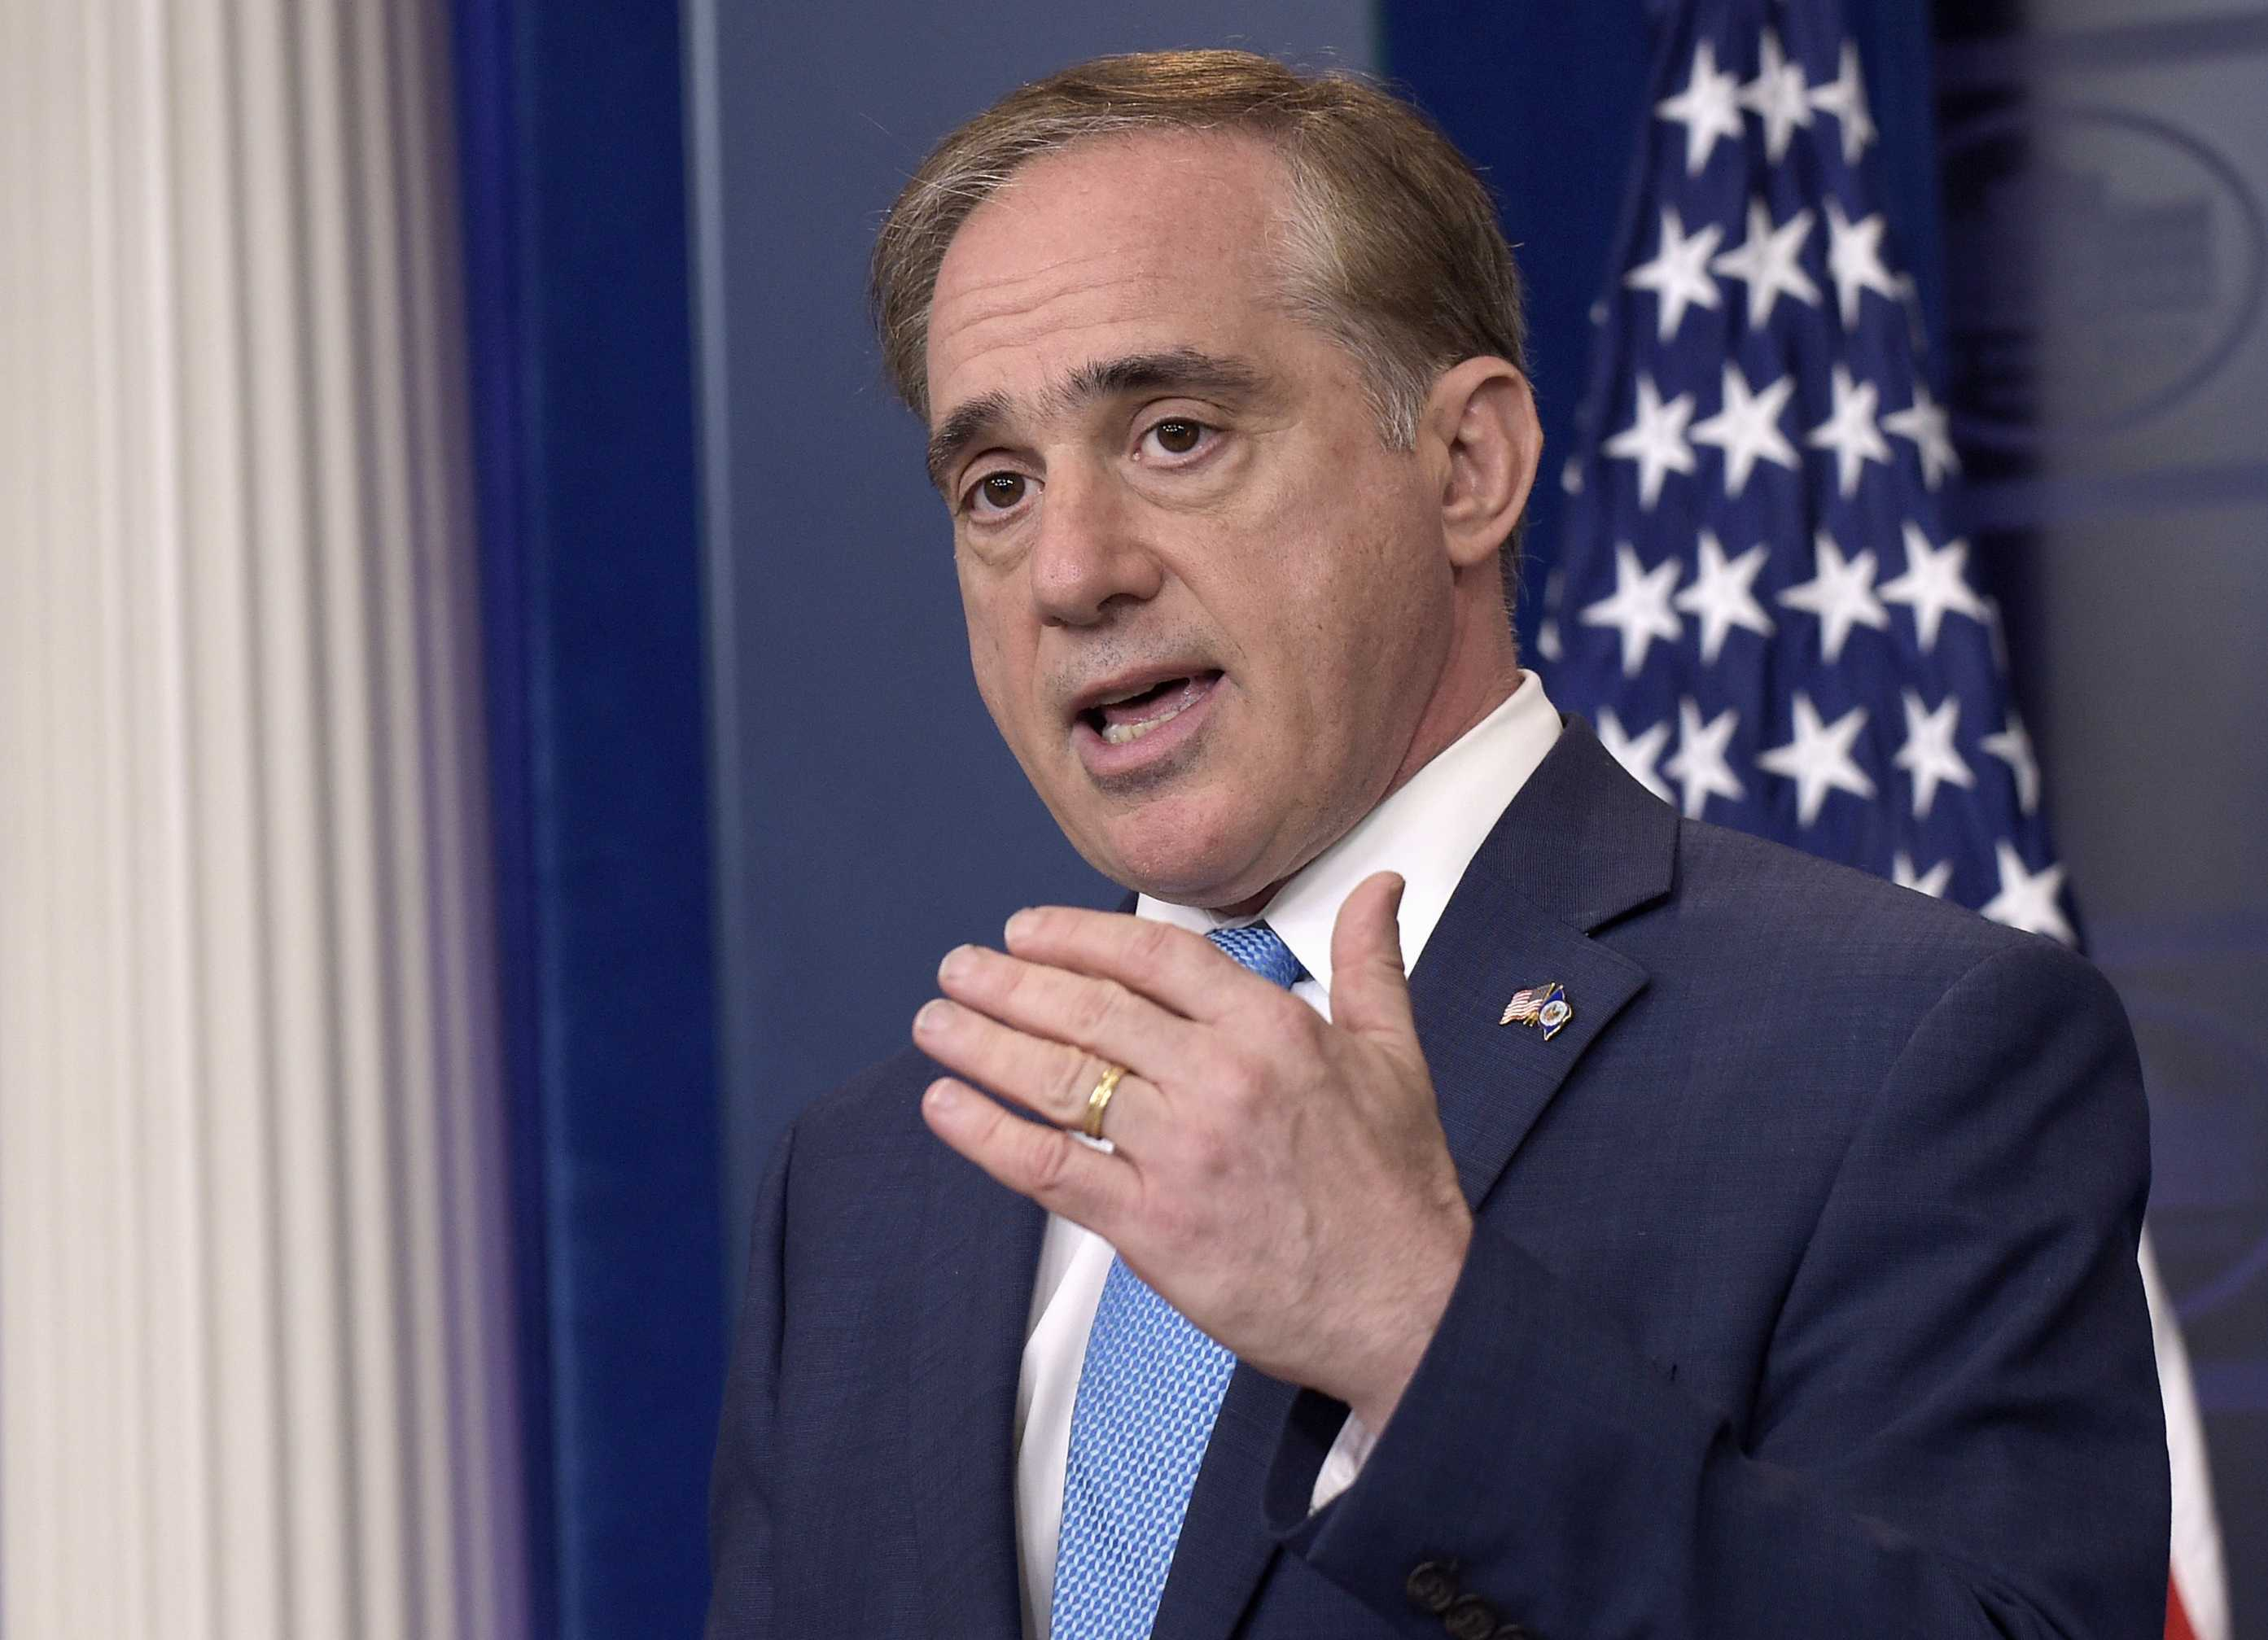 VA Chief Misused Taxpayer Money